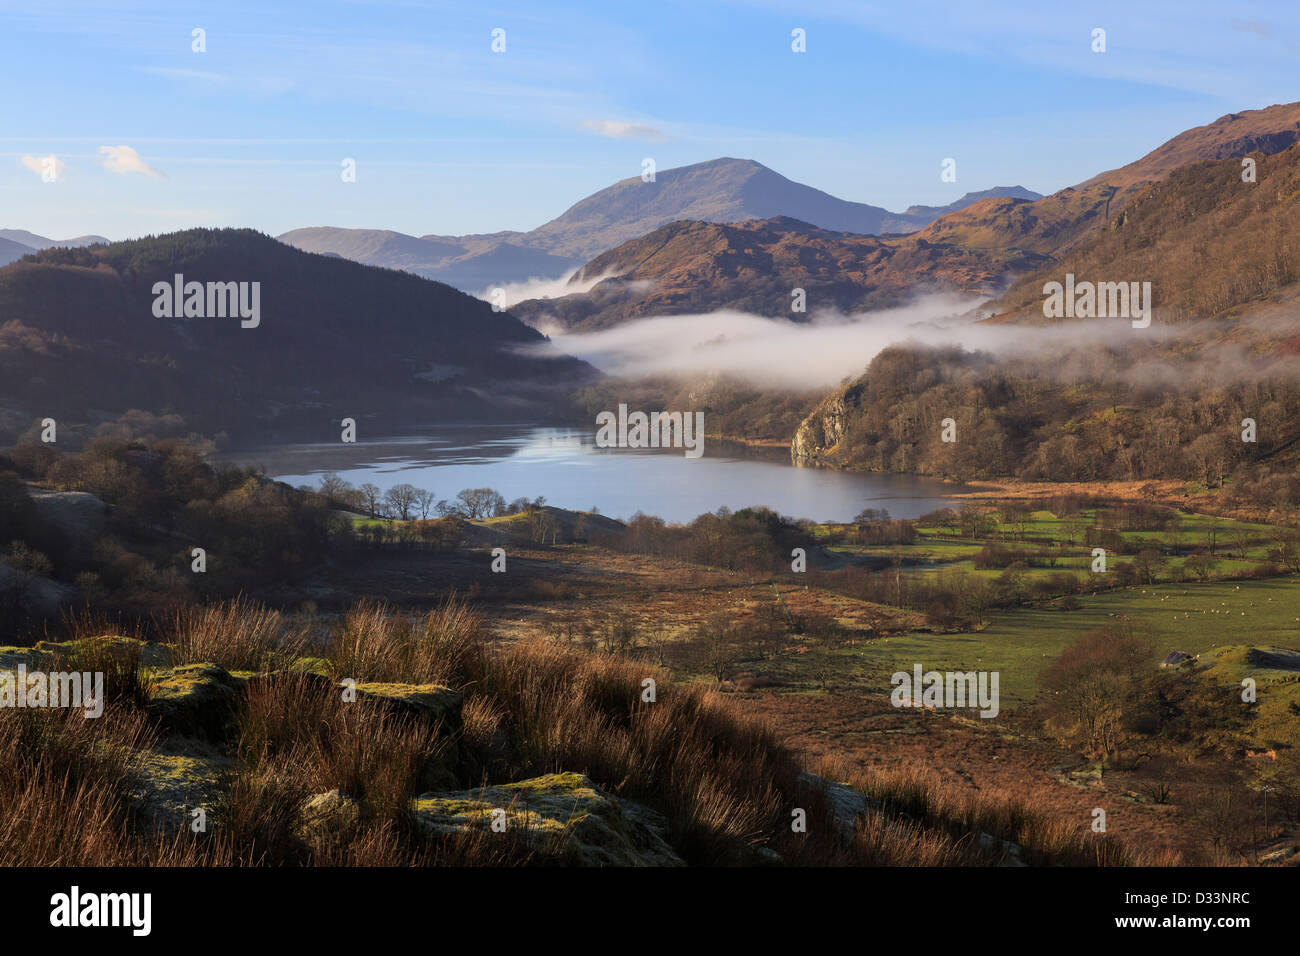 Scenic view along a valley to Llyn Gwynant lake with mist in mountains of Snowdonia National Park, Nantgwynant, North Wales, UK Stock Photo